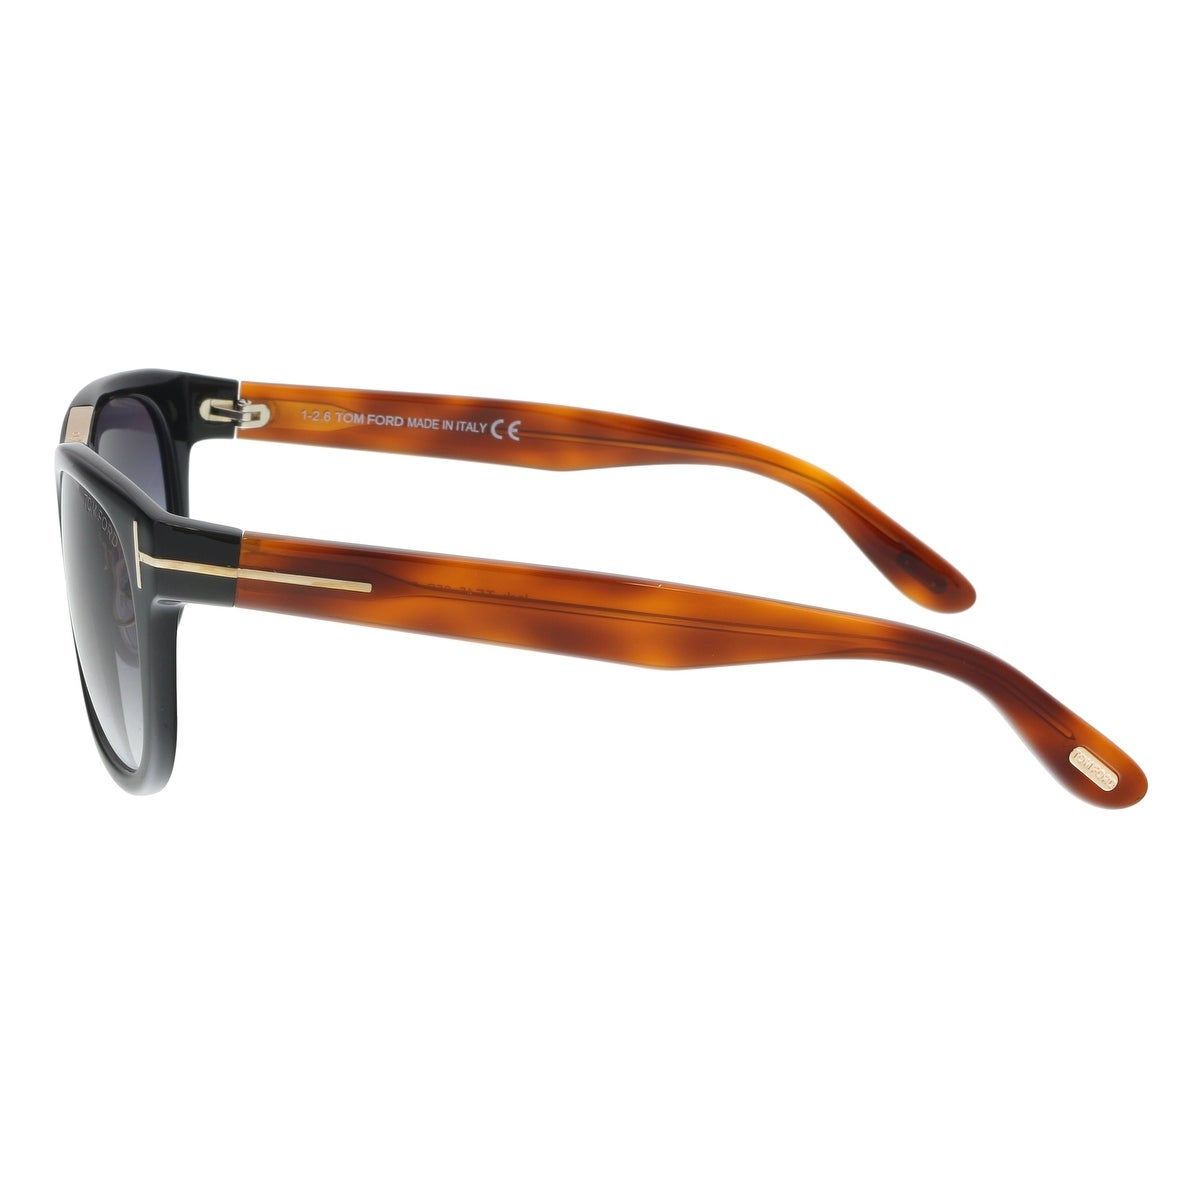 4a77744cd9 Shop Tom Ford FT0045 S 05B JACK Amber Black Square Sunglasses - 51-20-135 -  Free Shipping Today - Overstock - 19223094